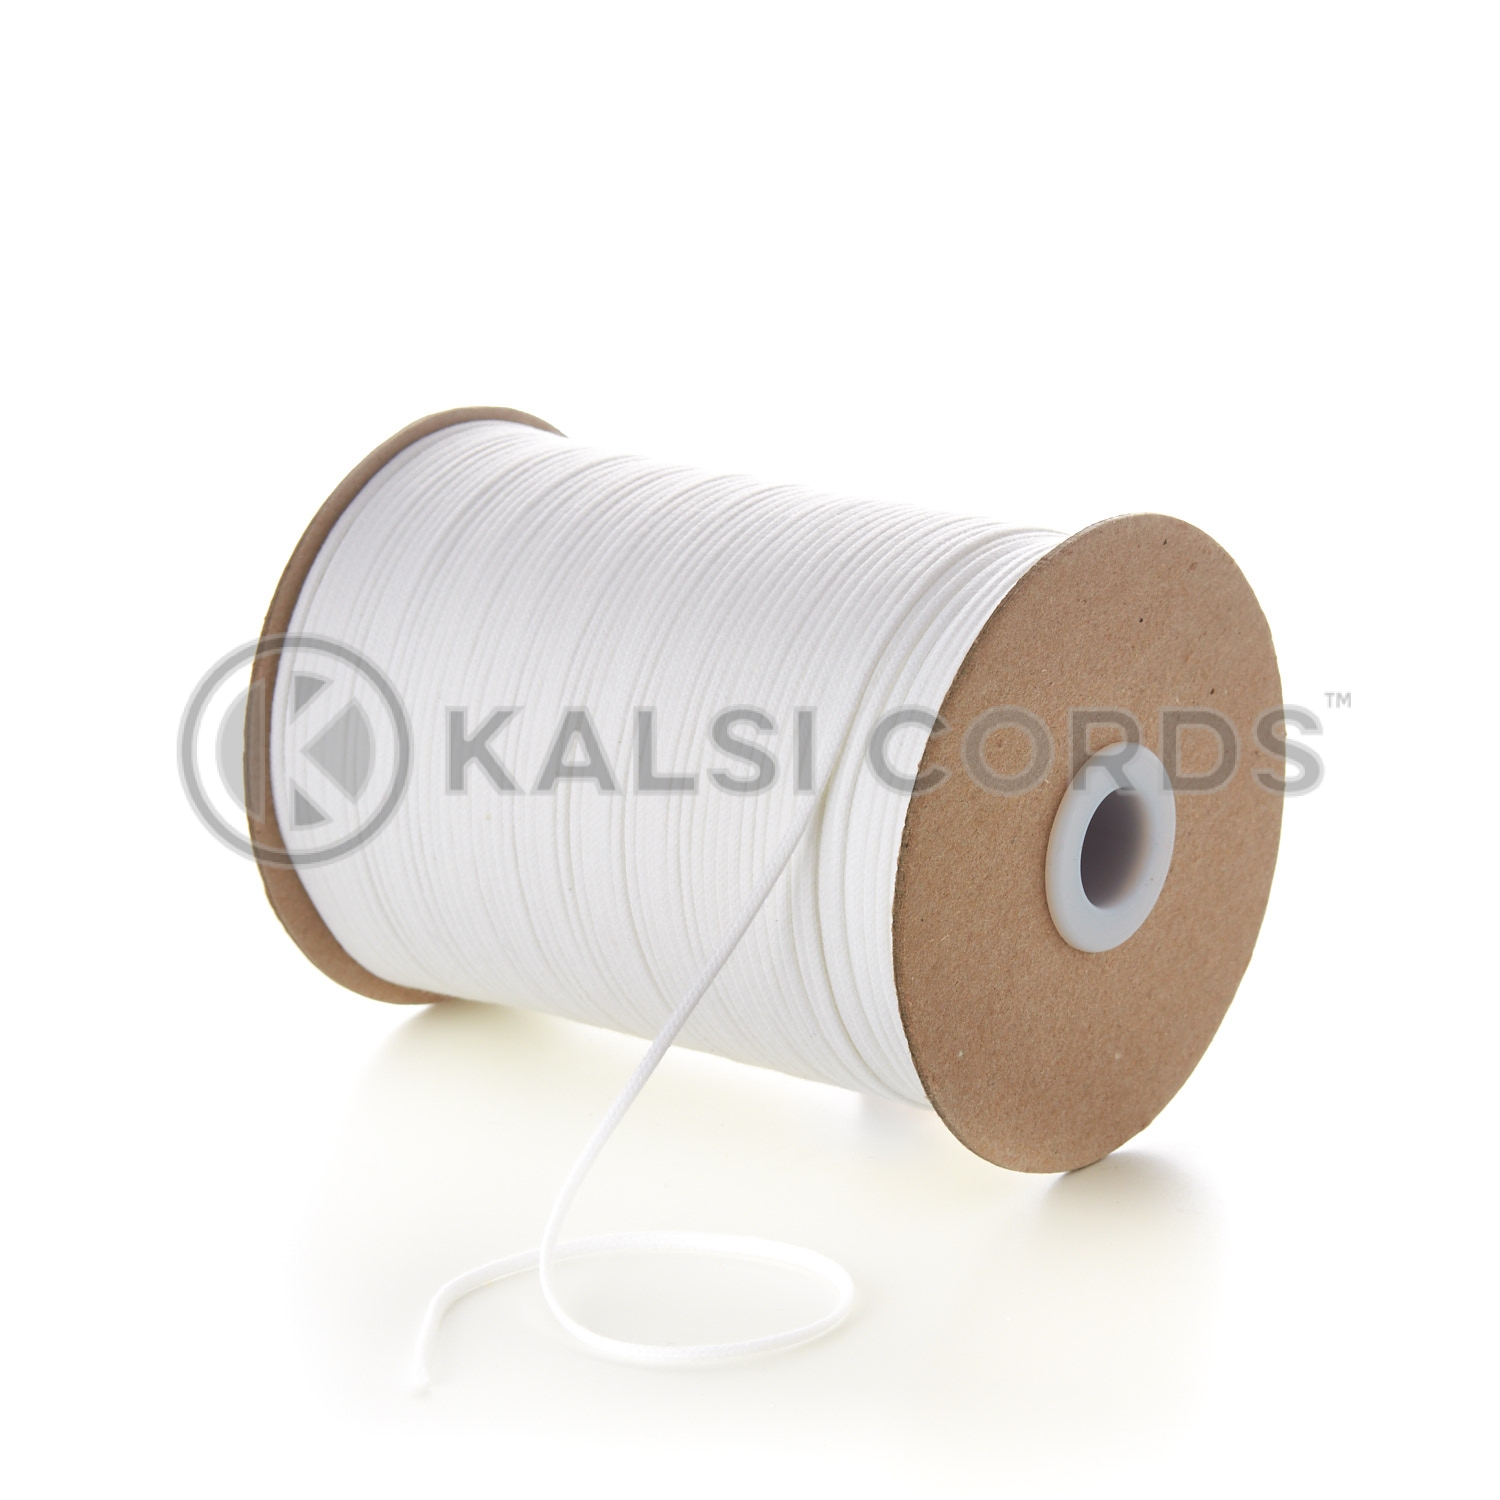 White 2mm Round Cotton Cord Thin Tubular Braided String Swing Tags C156 Kalsi Cords